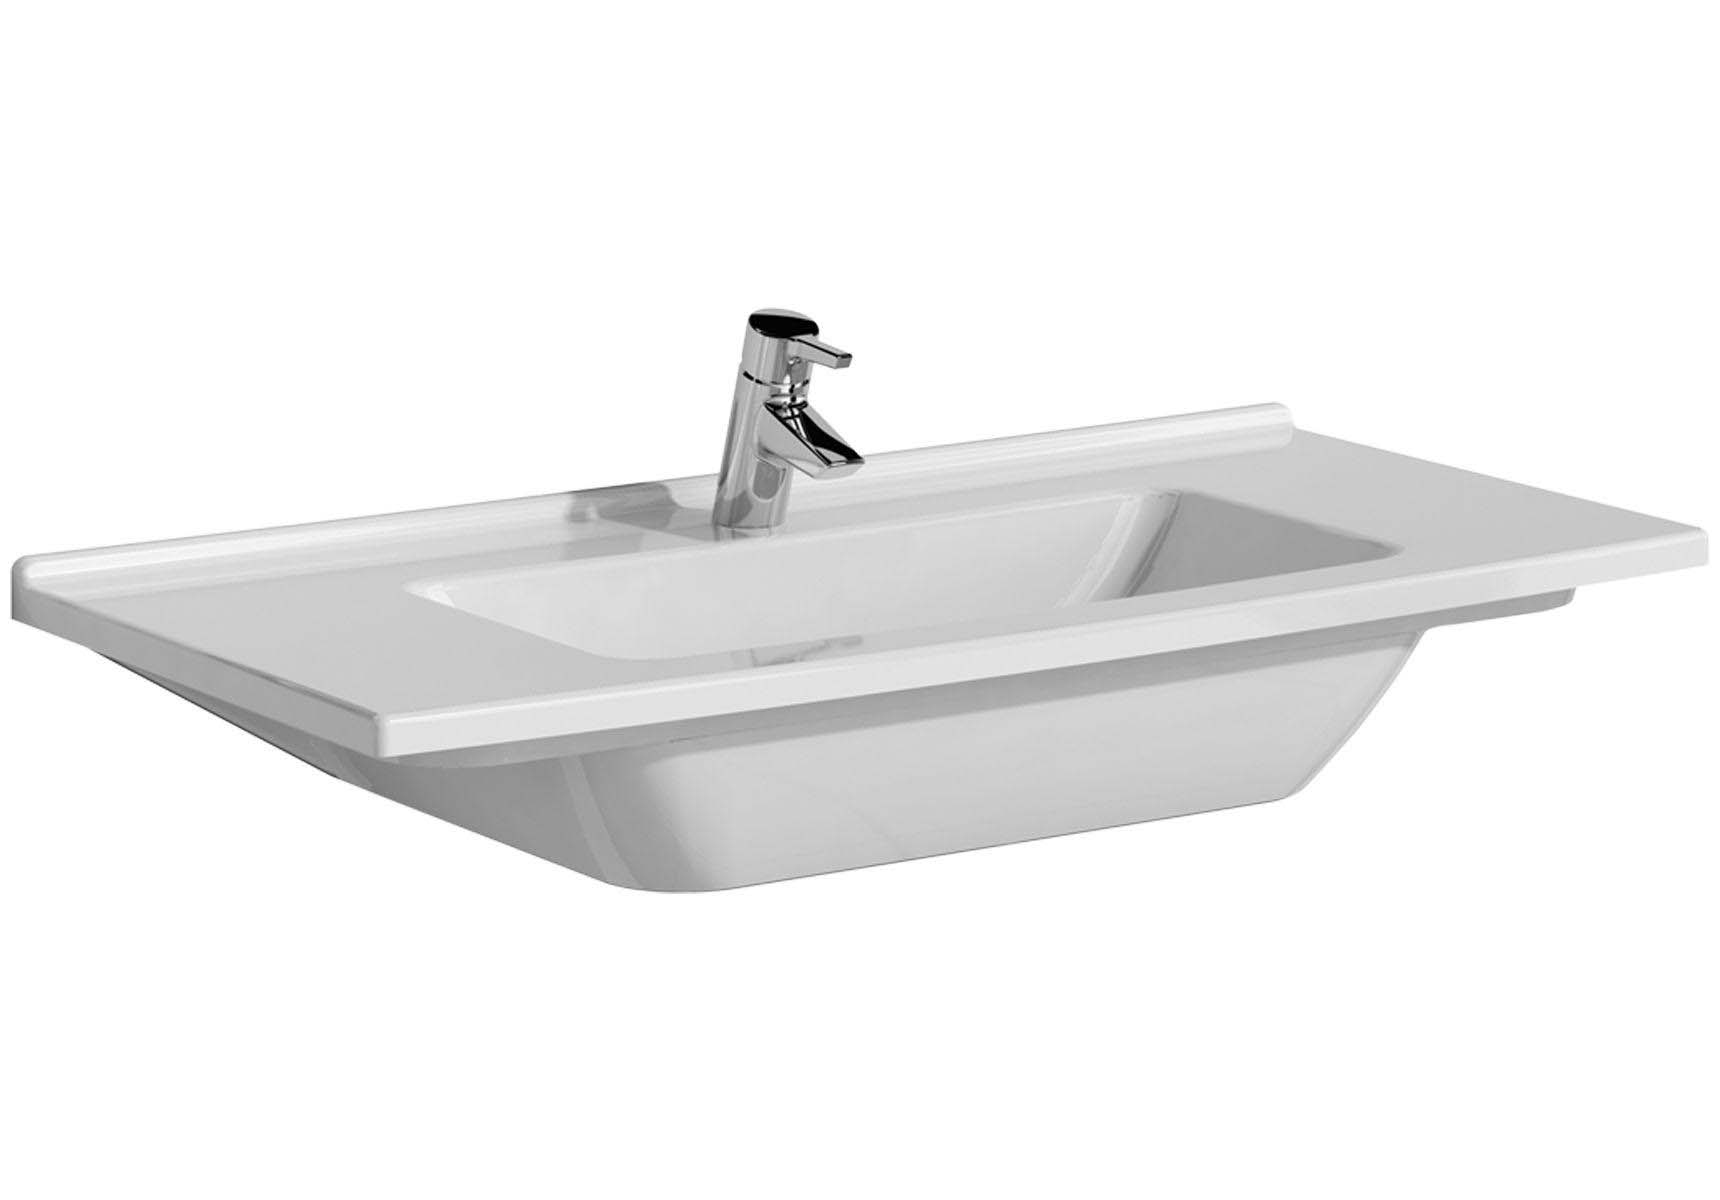 S50 Vanity Basin, 120cm with Middle Tap Hole, with Side Holes